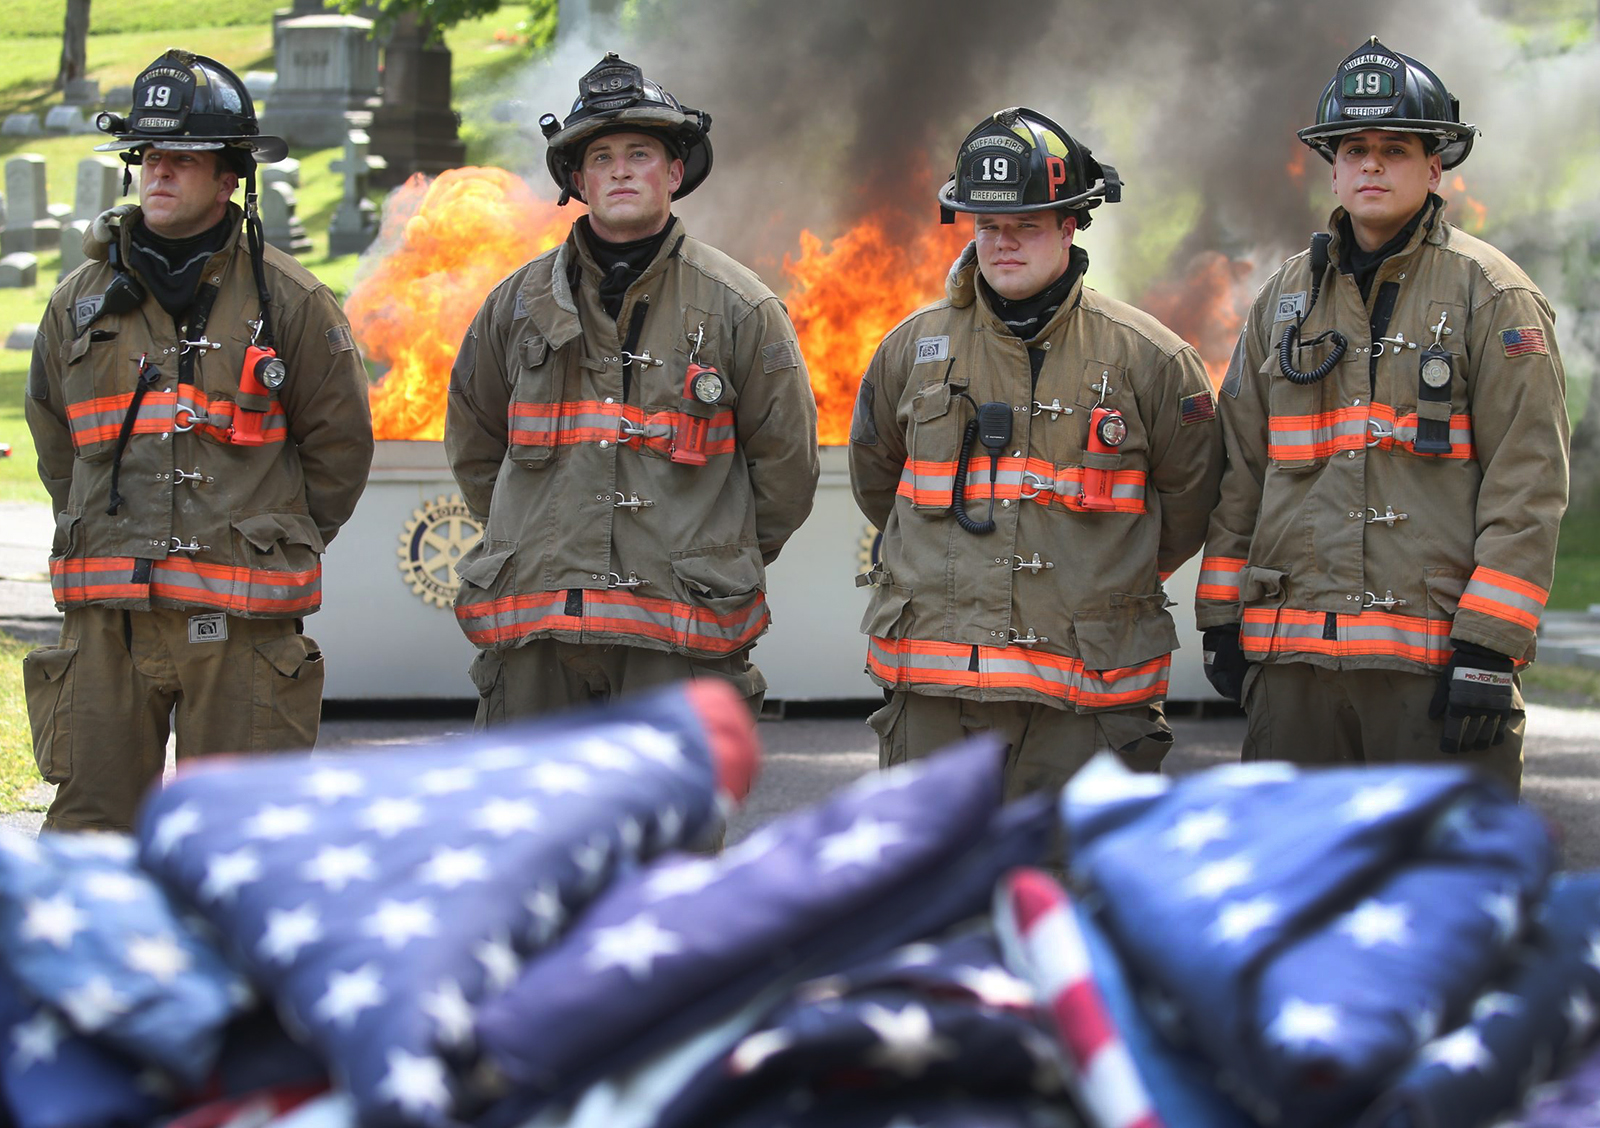 Buffalo Fireman from Engine 39 were on hand to burn old flags in the proper manner of disposal, on the 100th Anniversary of Flag Day, at Forest Lawn Cemetery , in Buffalo, N.Y.,on Tuesday June 14, 2016and the Buffalo Fire Dept. crew from Engine 19 helped out with the retirement of old flags by burning them. (John Hickey/Buffalo News)